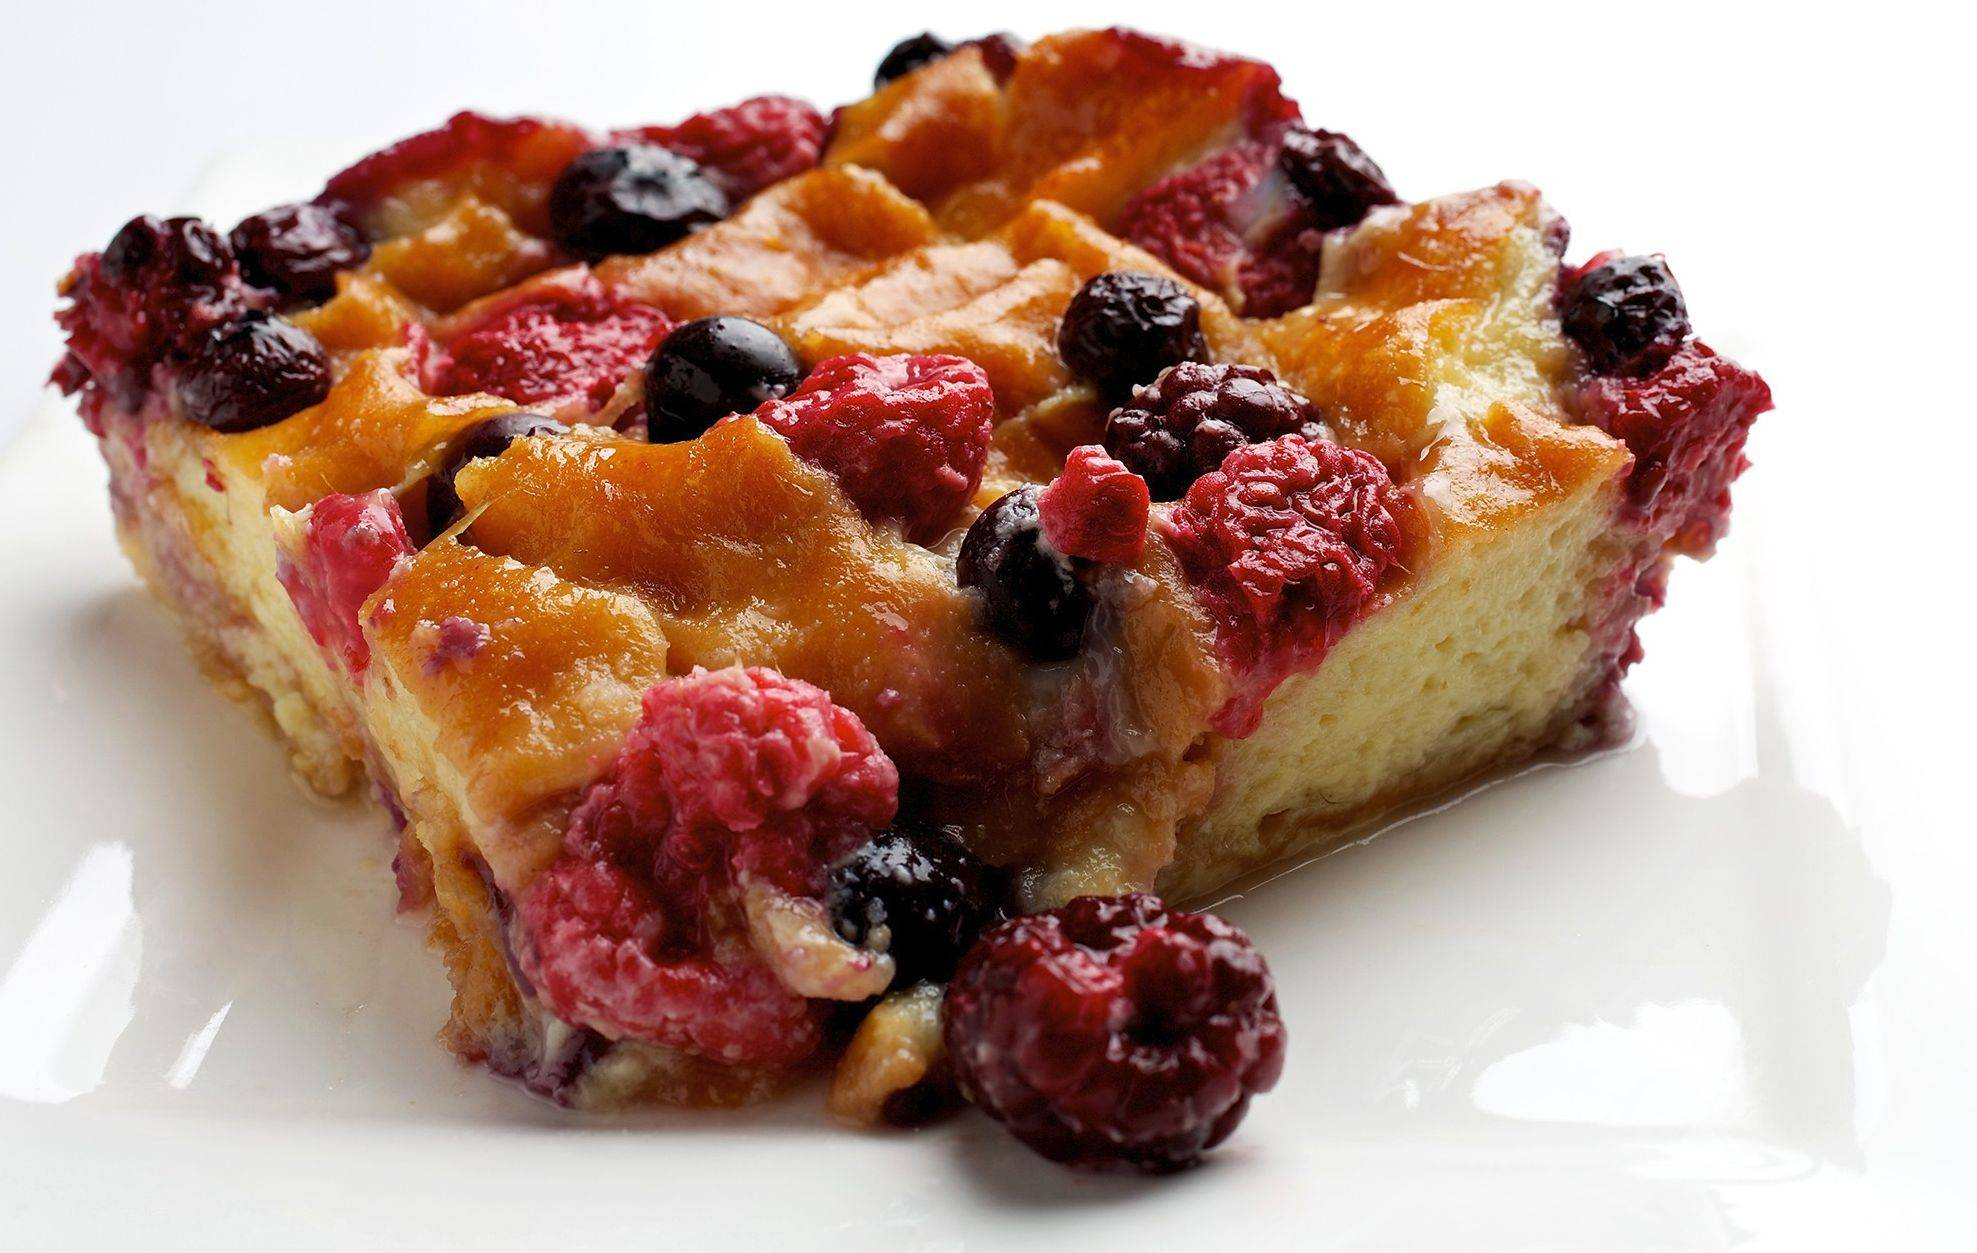 This twist on bread pudding is so good you'll want to buy extra doughnuts next time you're at the shop. Add your favorite berries or fruit.